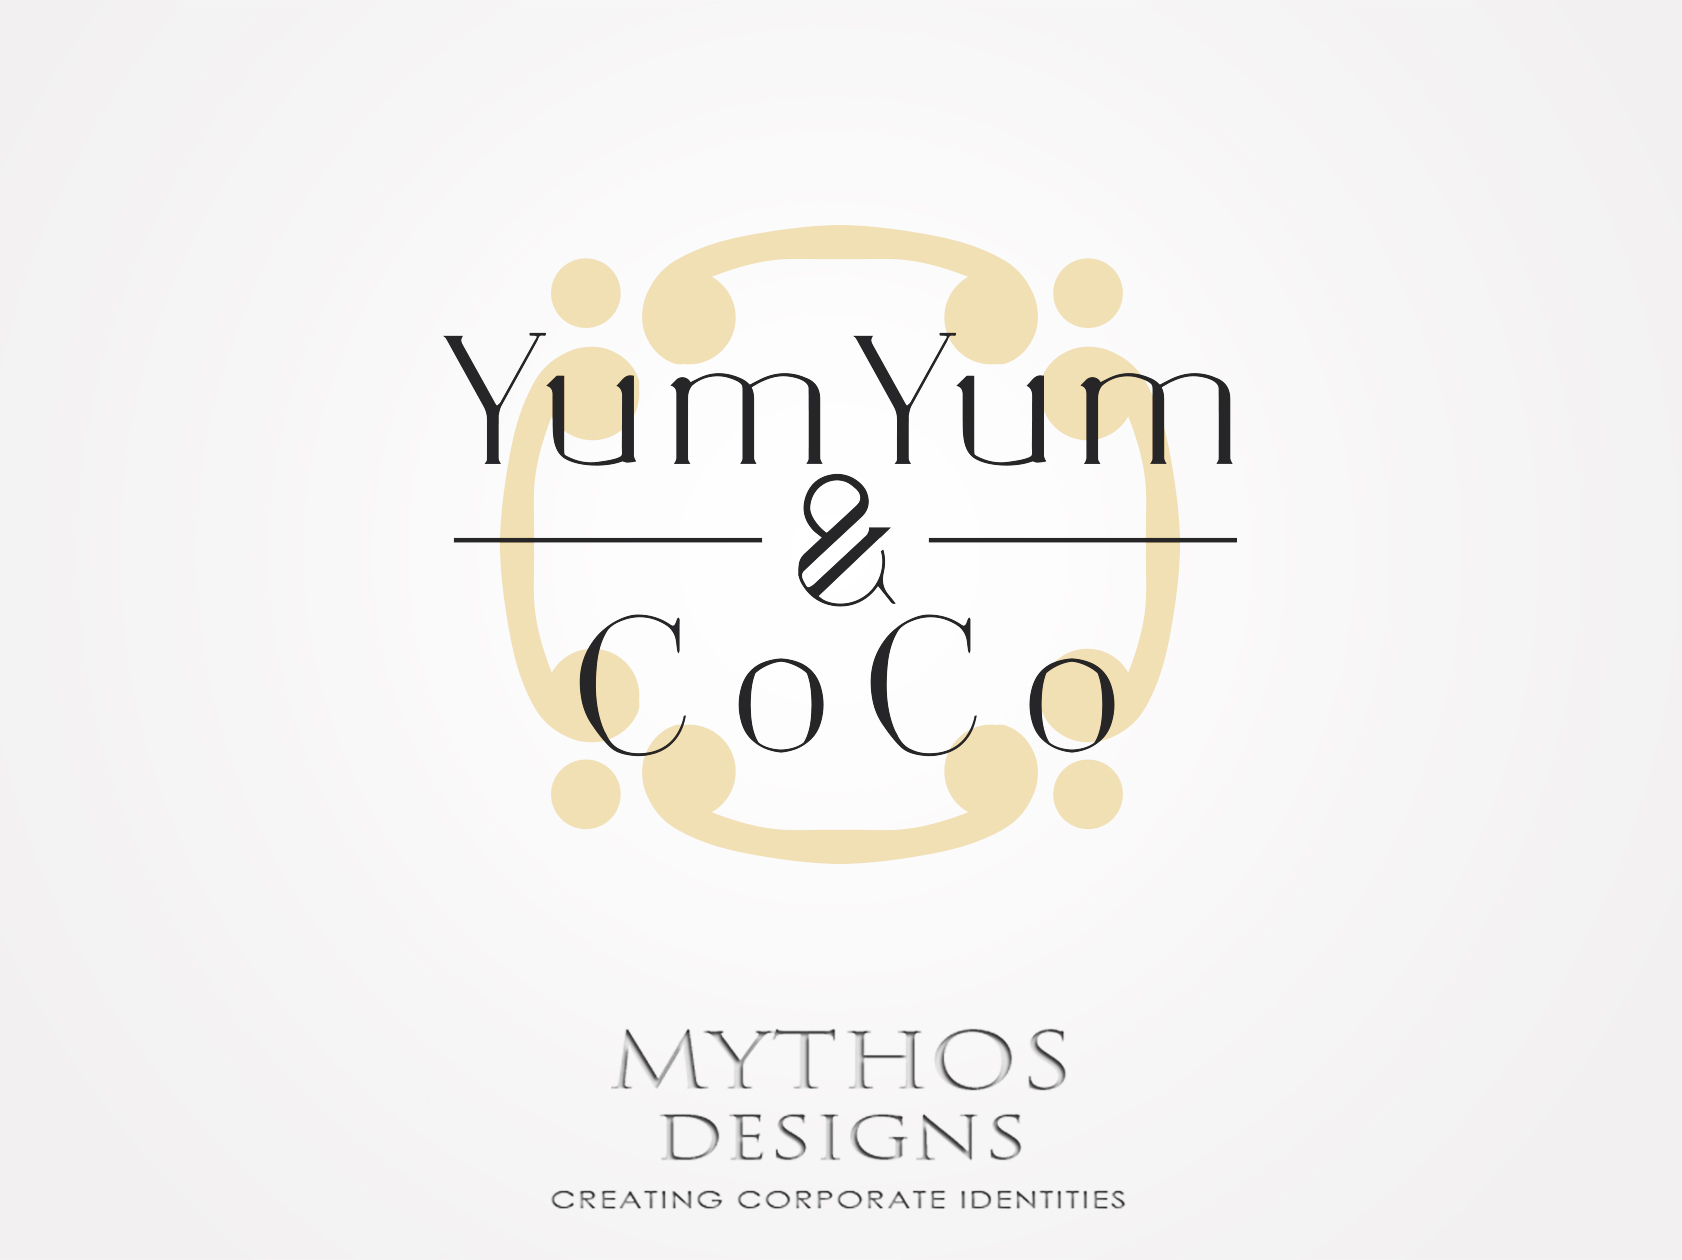 Logo Design by Mythos Designs - Entry No. 11 in the Logo Design Contest Logo Design for YumYum & CoCo.